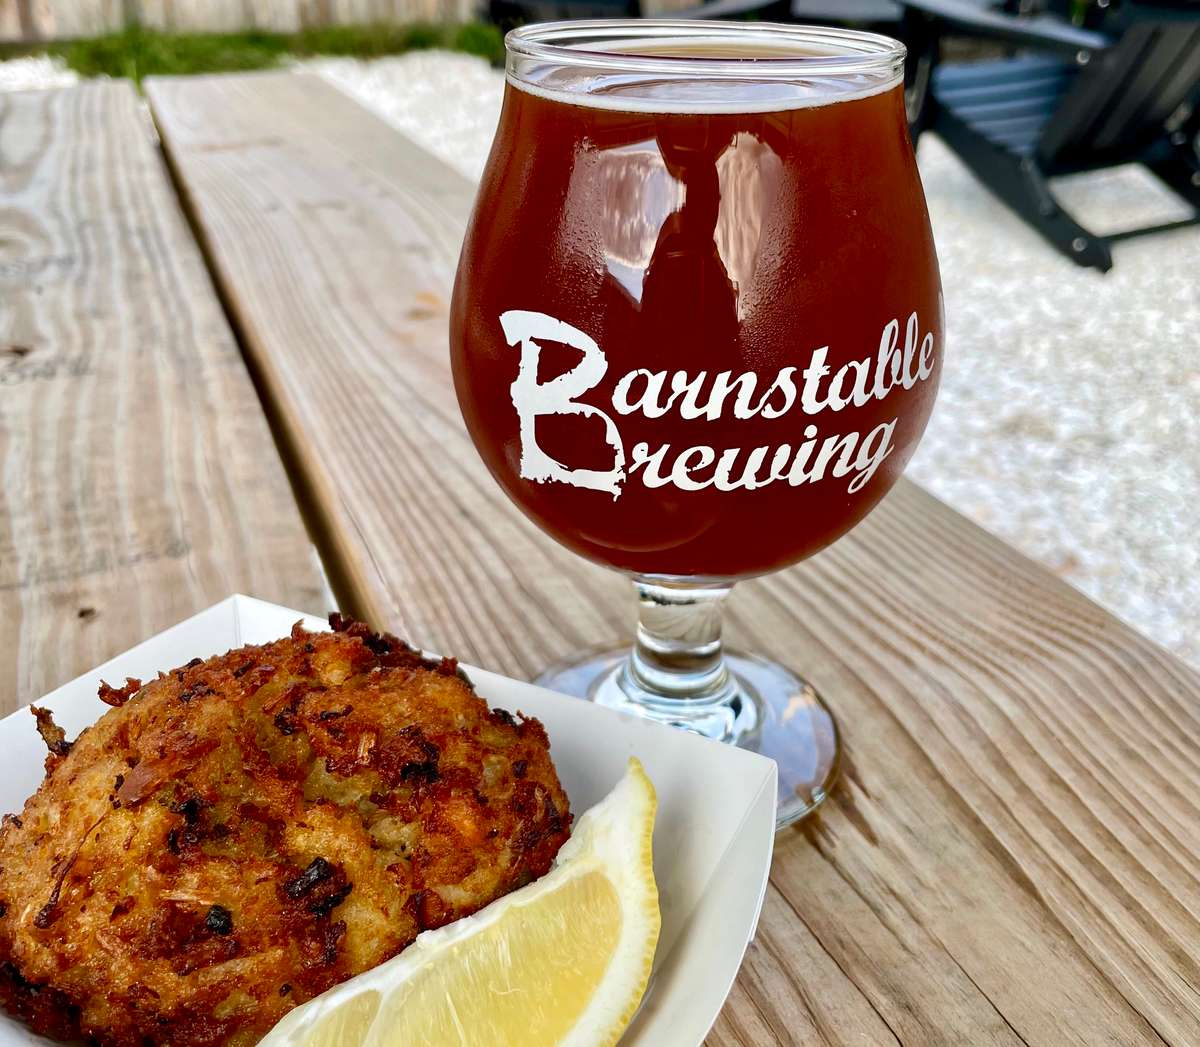 A stuffed quahog from the food truck with a glass of Barnstable Brewing's pumpkin beer on a picnic table.